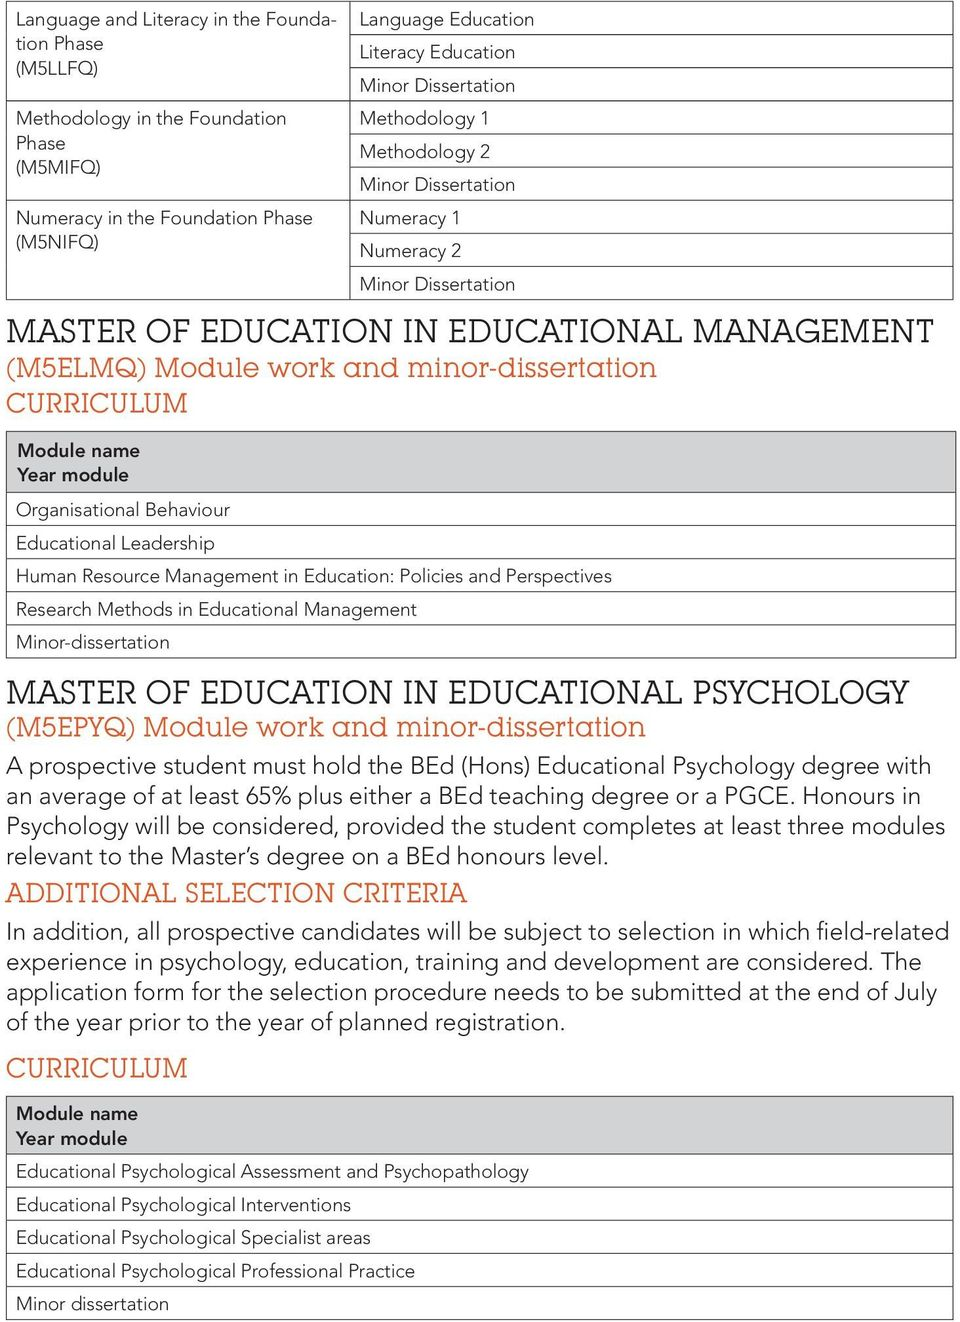 Human Resource Management in Education: Policies and Perspectives Research Methods in Educational Management Minor-dissertation MASTER OF EDUCATION IN EDUCATIONAL PSYCHOLOGY (M5EPYQ) Module work and